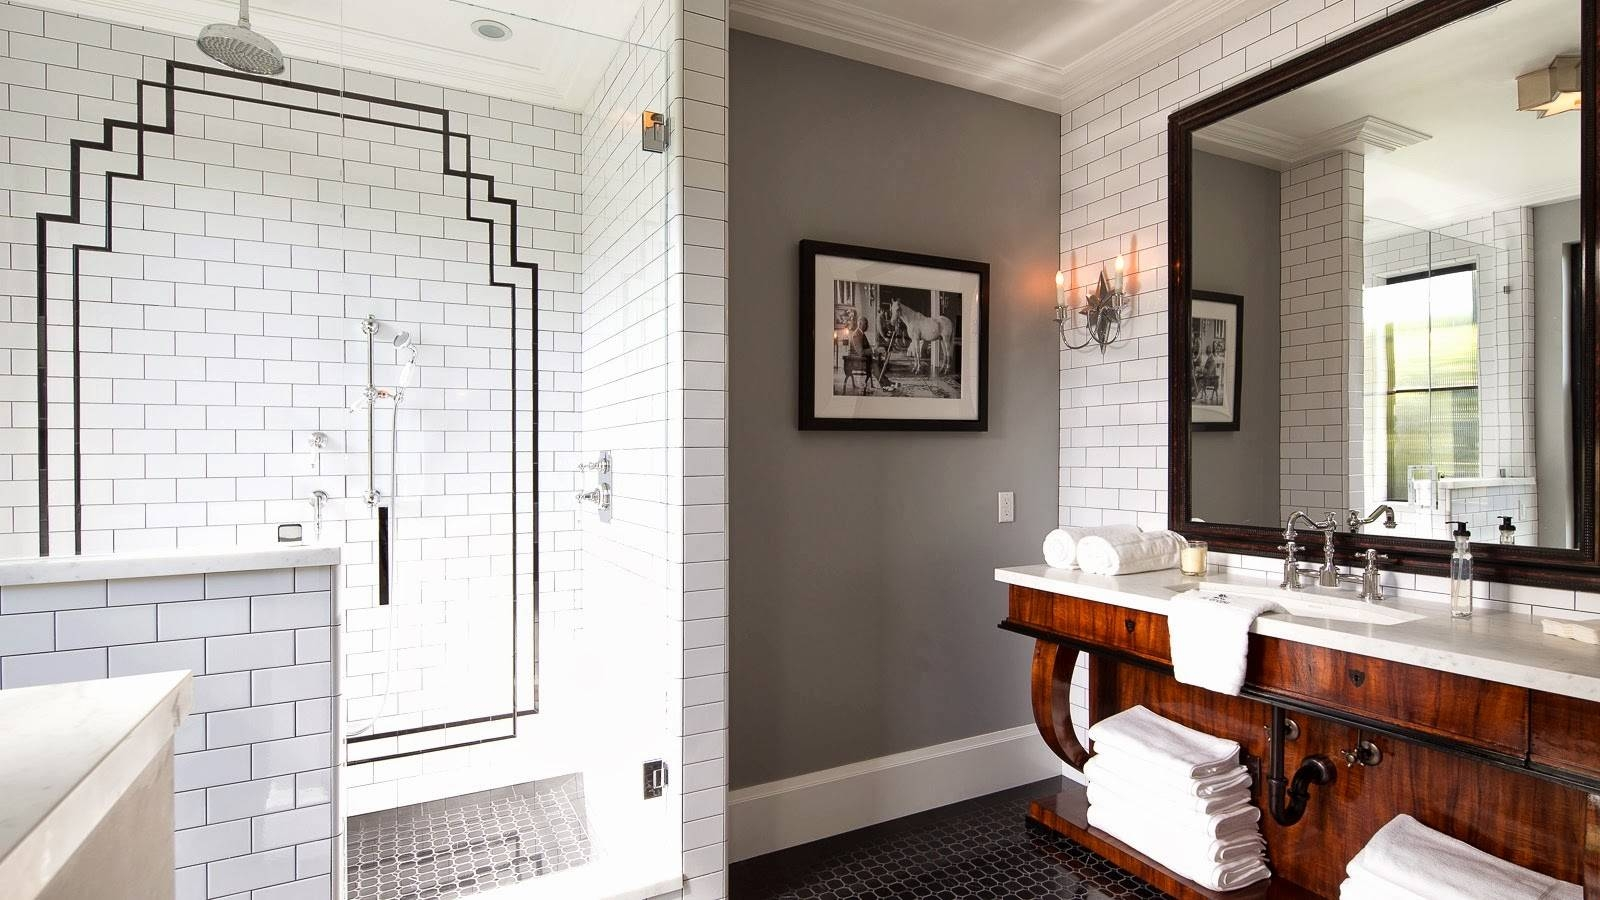 Fascinating Home Bathroom In Small Space For Apartment Ideas with regard to Large Art Deco Wall Mirrors (Image 16 of 25)